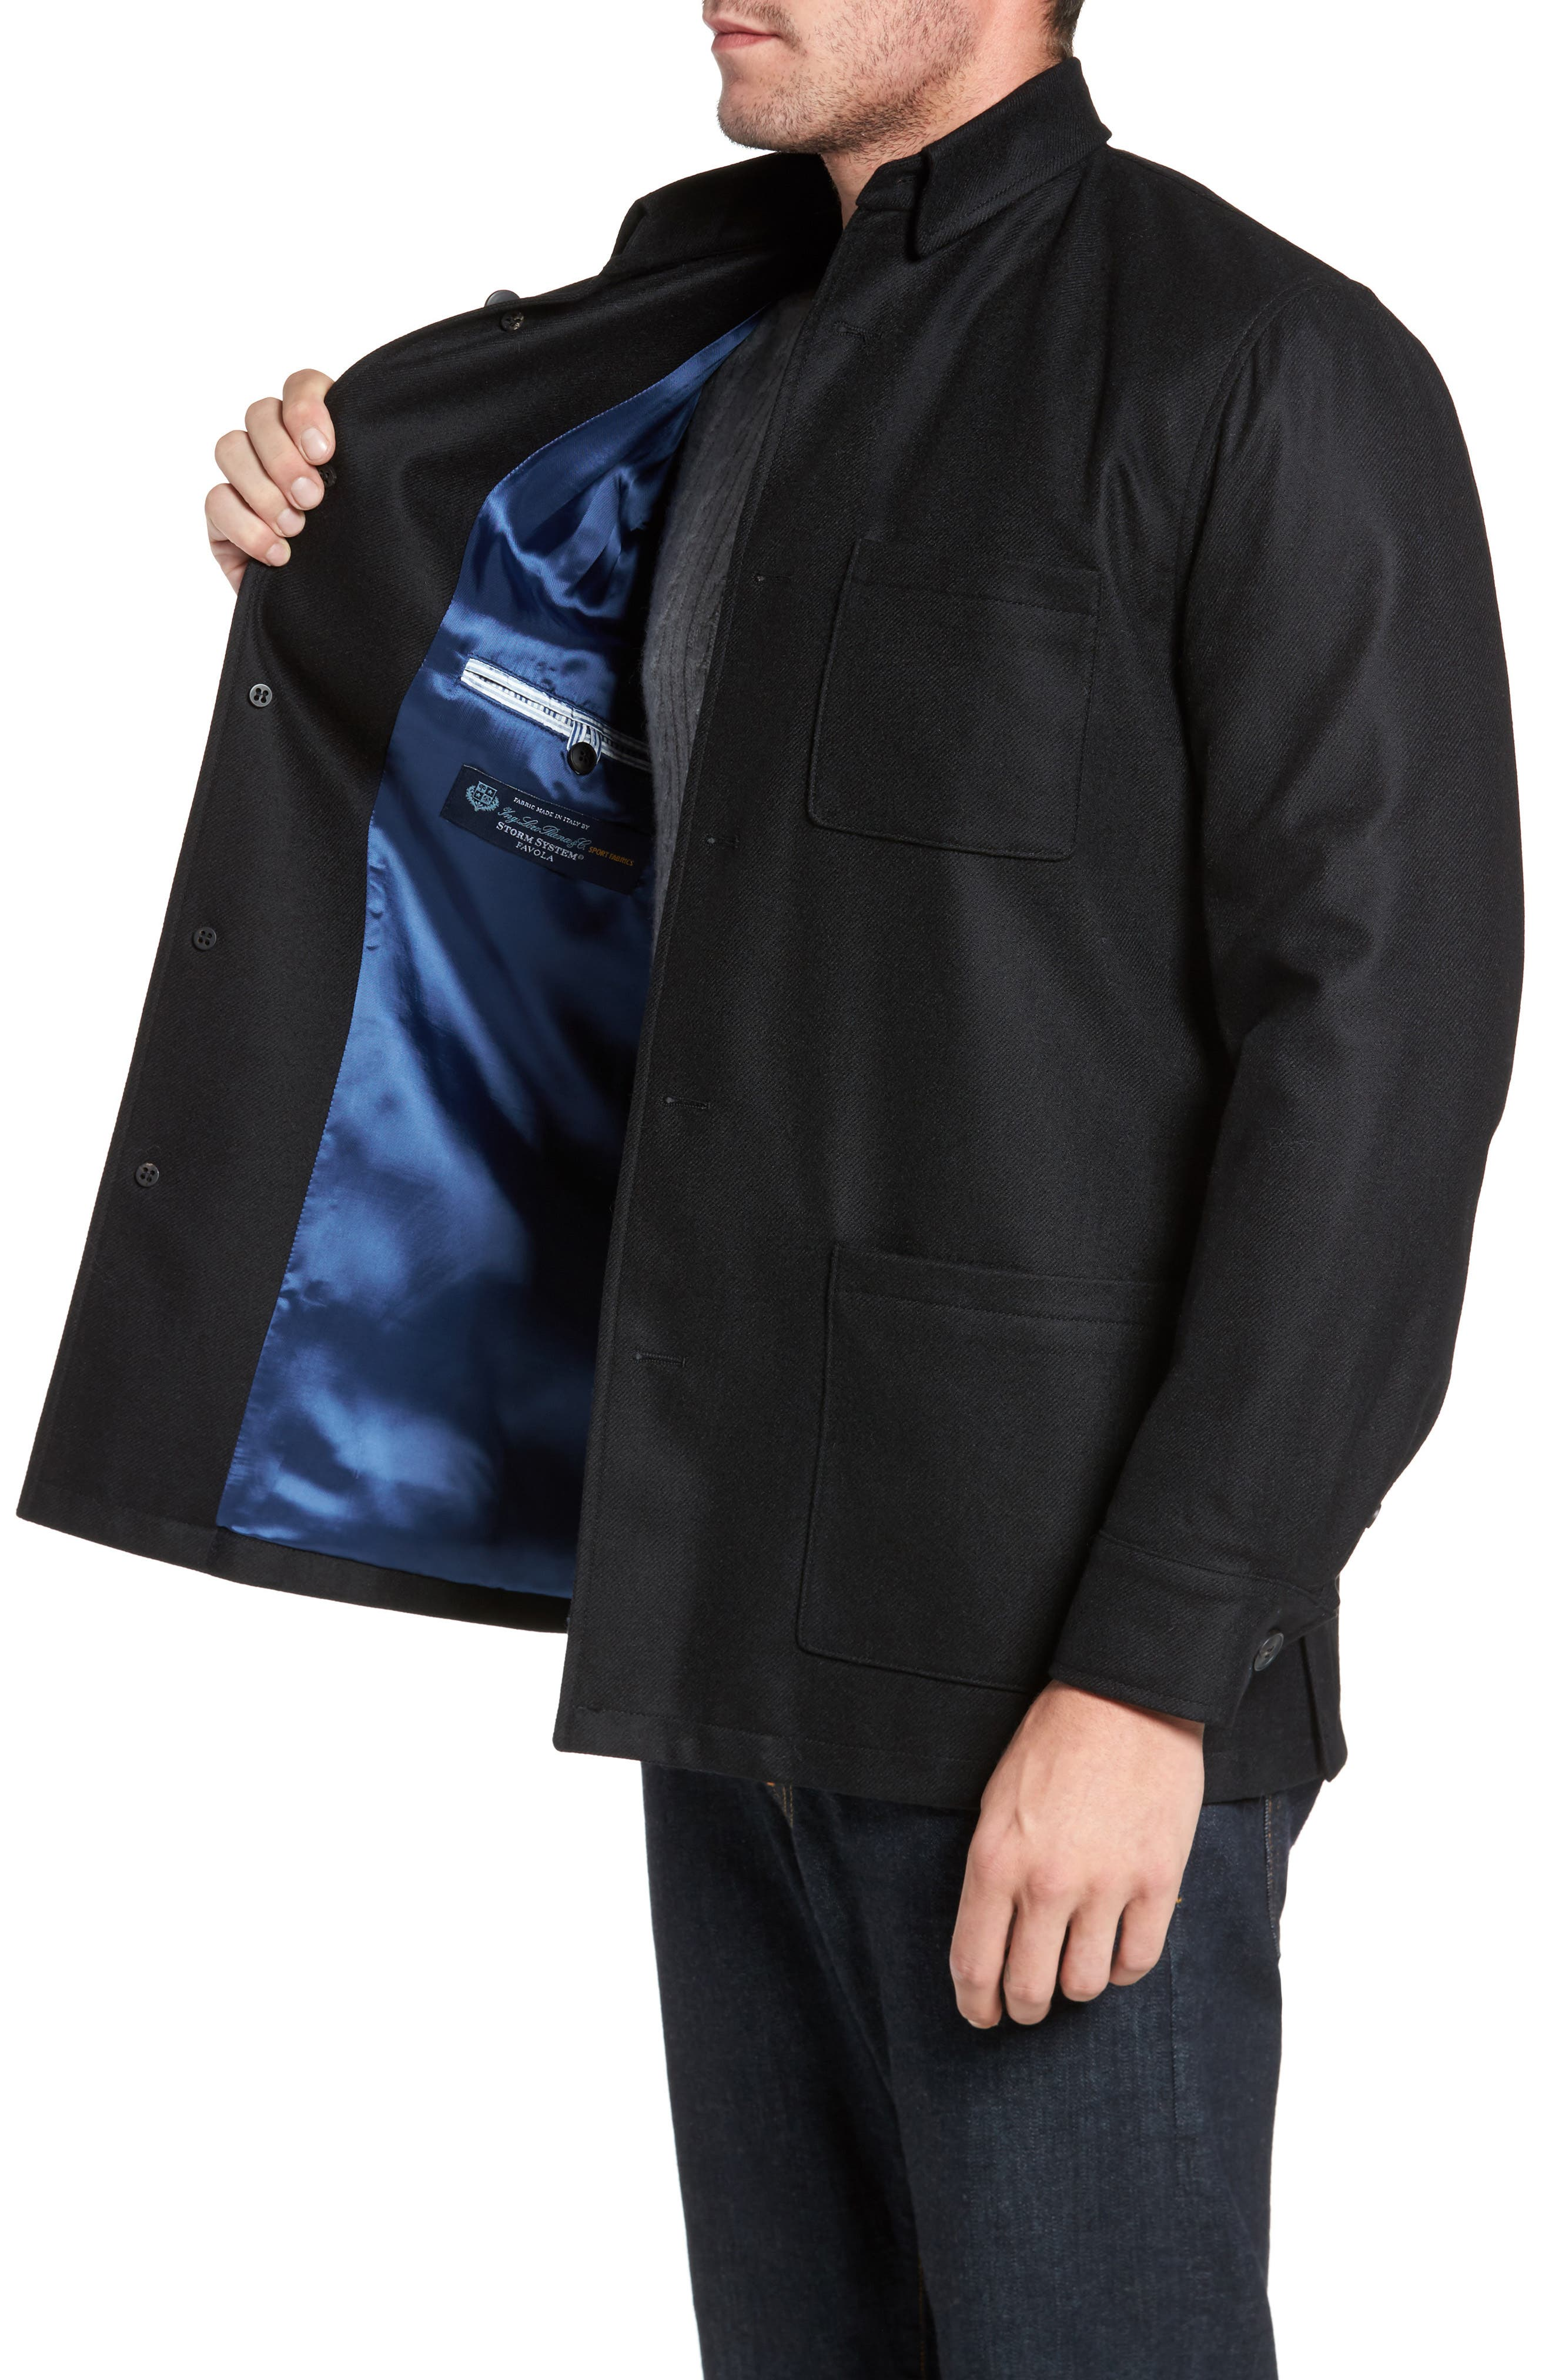 Loro Piana Storm System Shirt Jacket,                             Alternate thumbnail 3, color,                             002